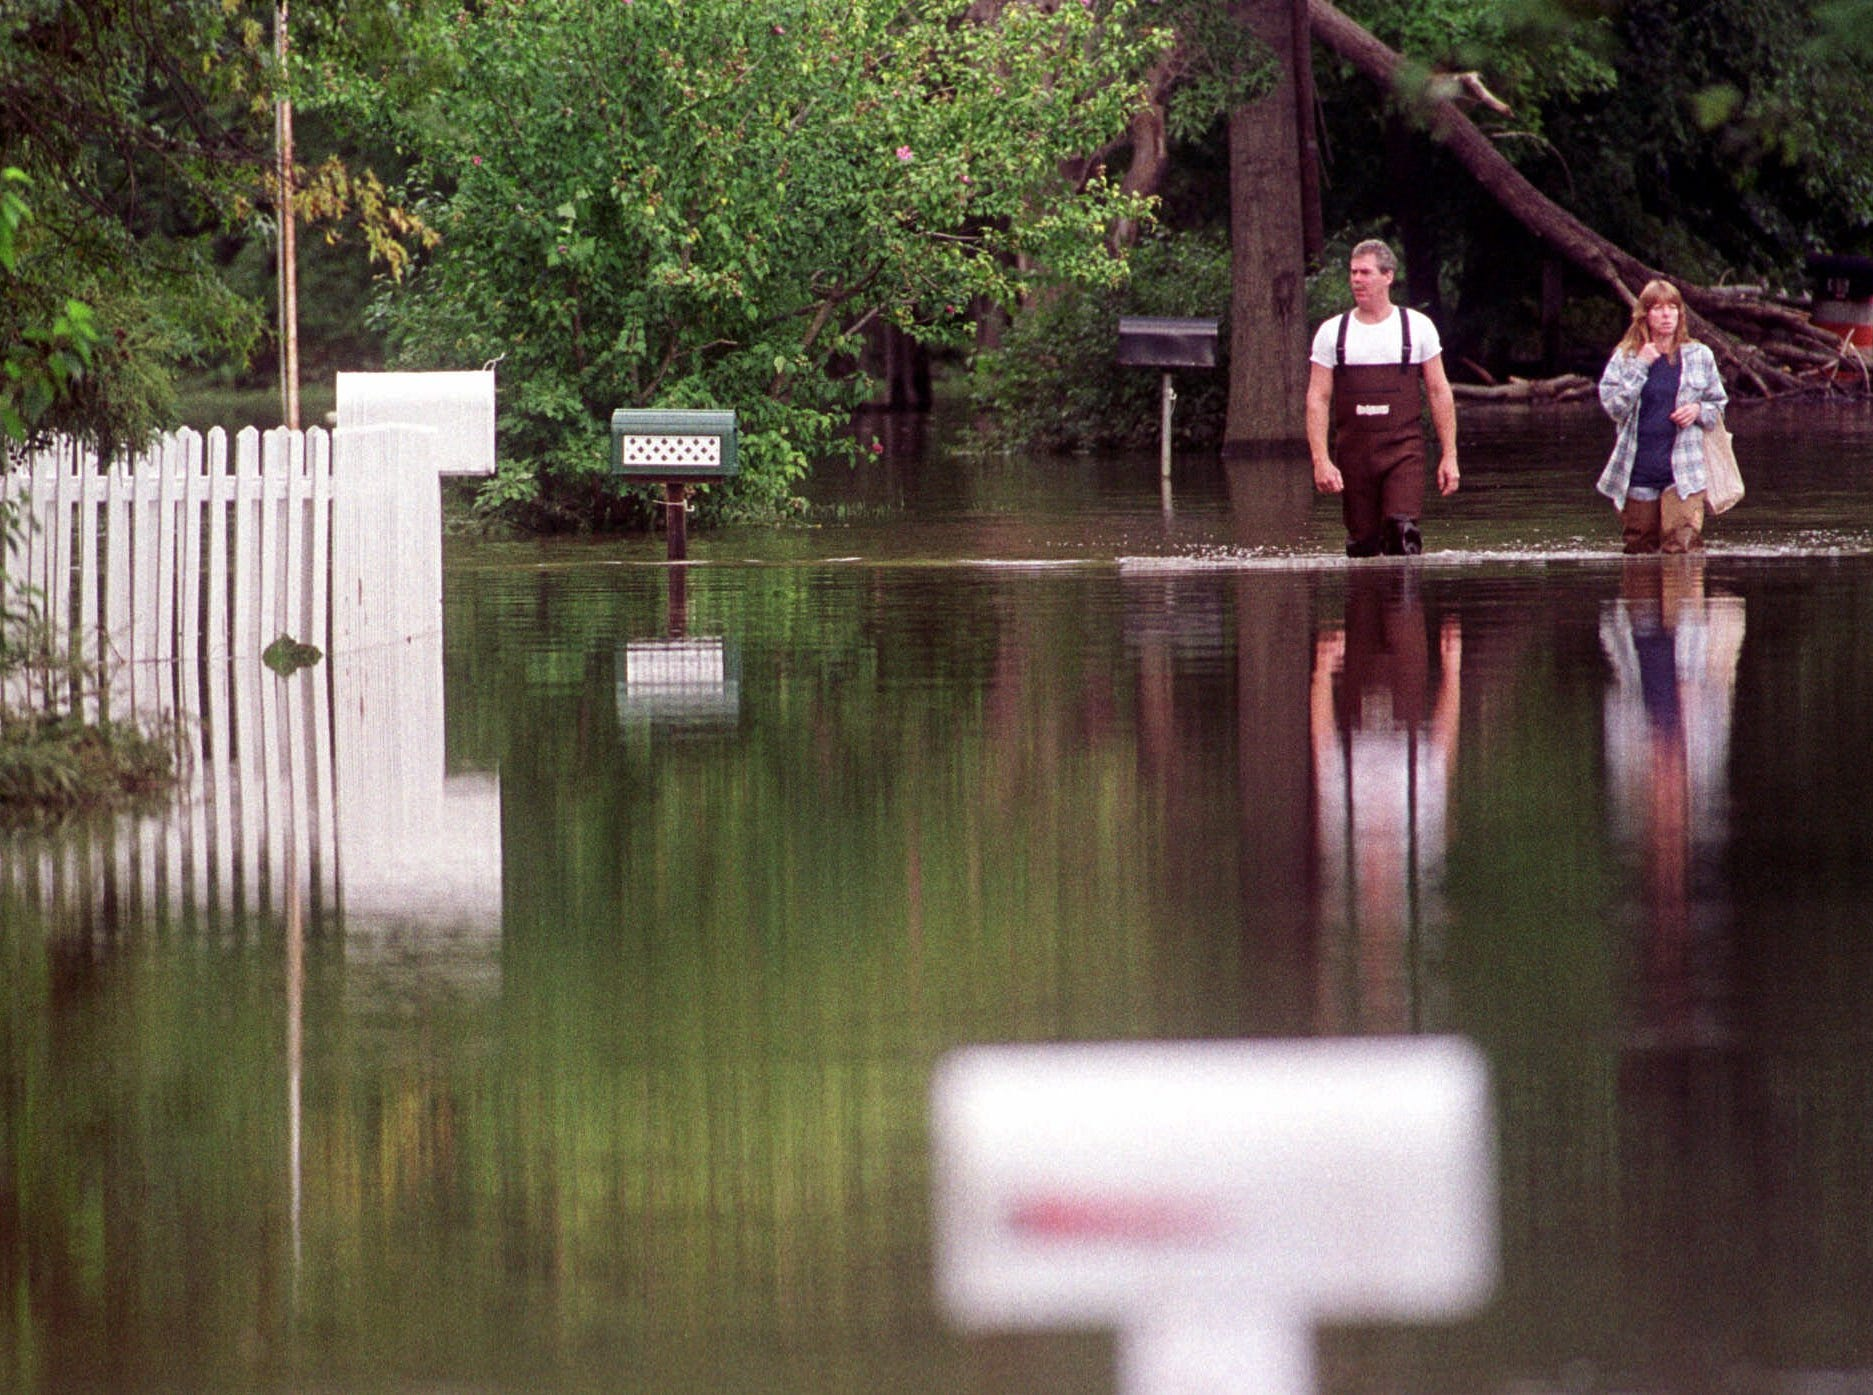 Sept. 19, 1999: Peter Jackson and his wife, Nancy, walk down their still-flooded street in Wayne. The Jackson's, who have lived here for 20 years, say their house was spared the flood caused by Hurricane Floyd because it is built up above flood height.